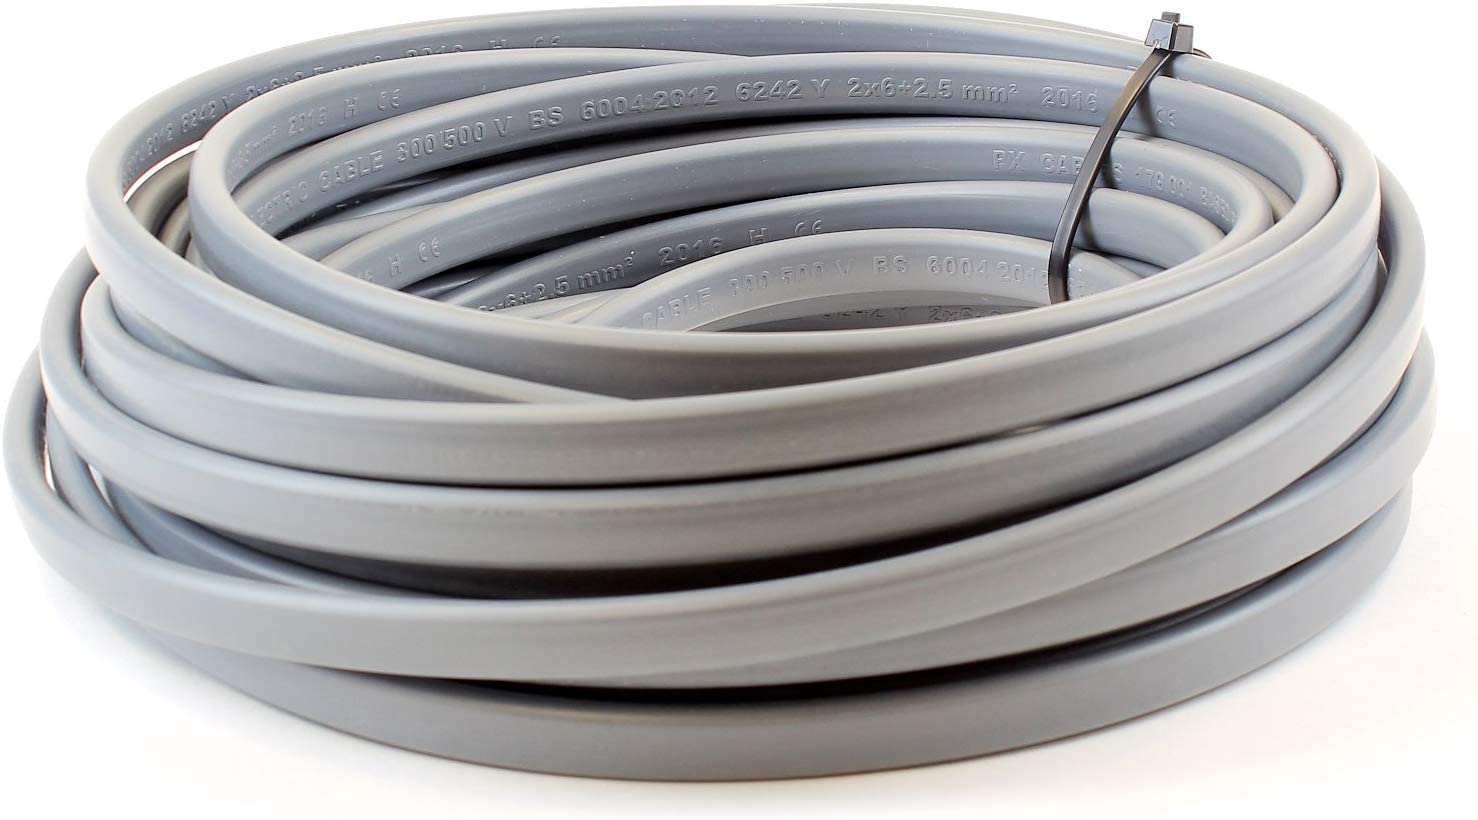 5M 2.5 mm Twin and Earth 6242Y Flat Grey Electric Cable